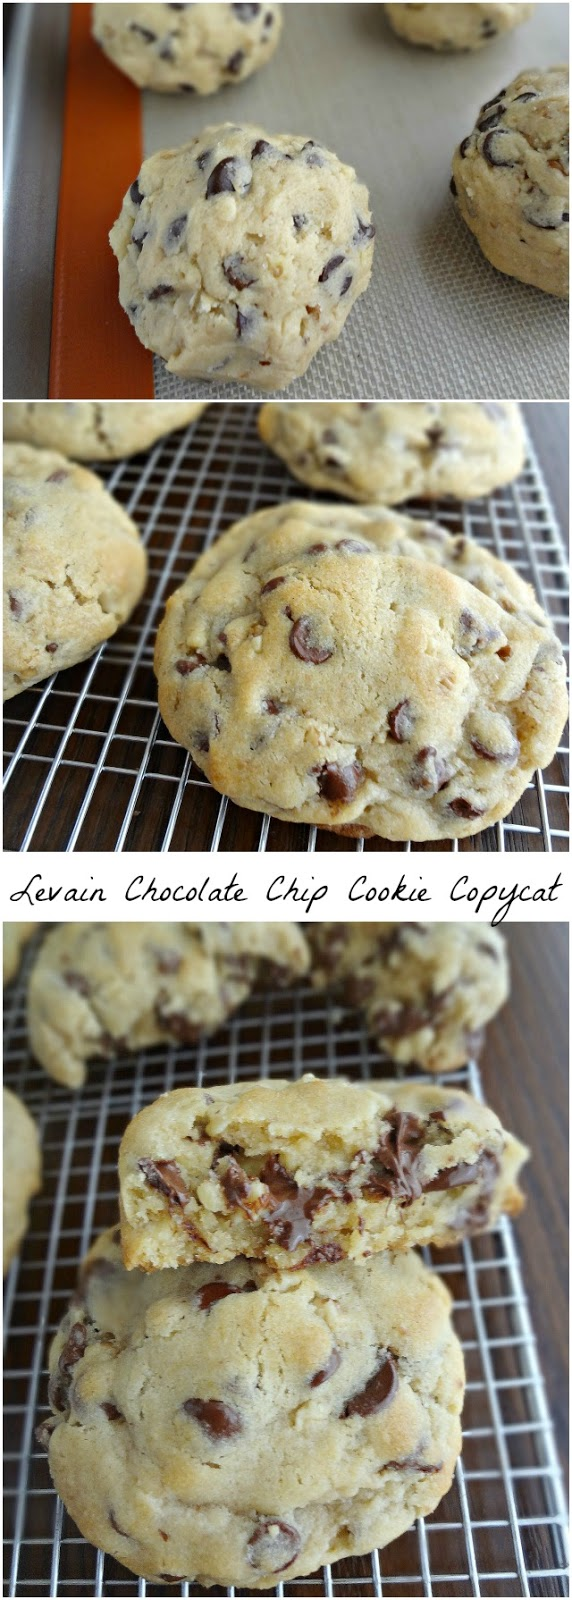 THE Levain Chocolate Chip Cookie Copycat Recipe